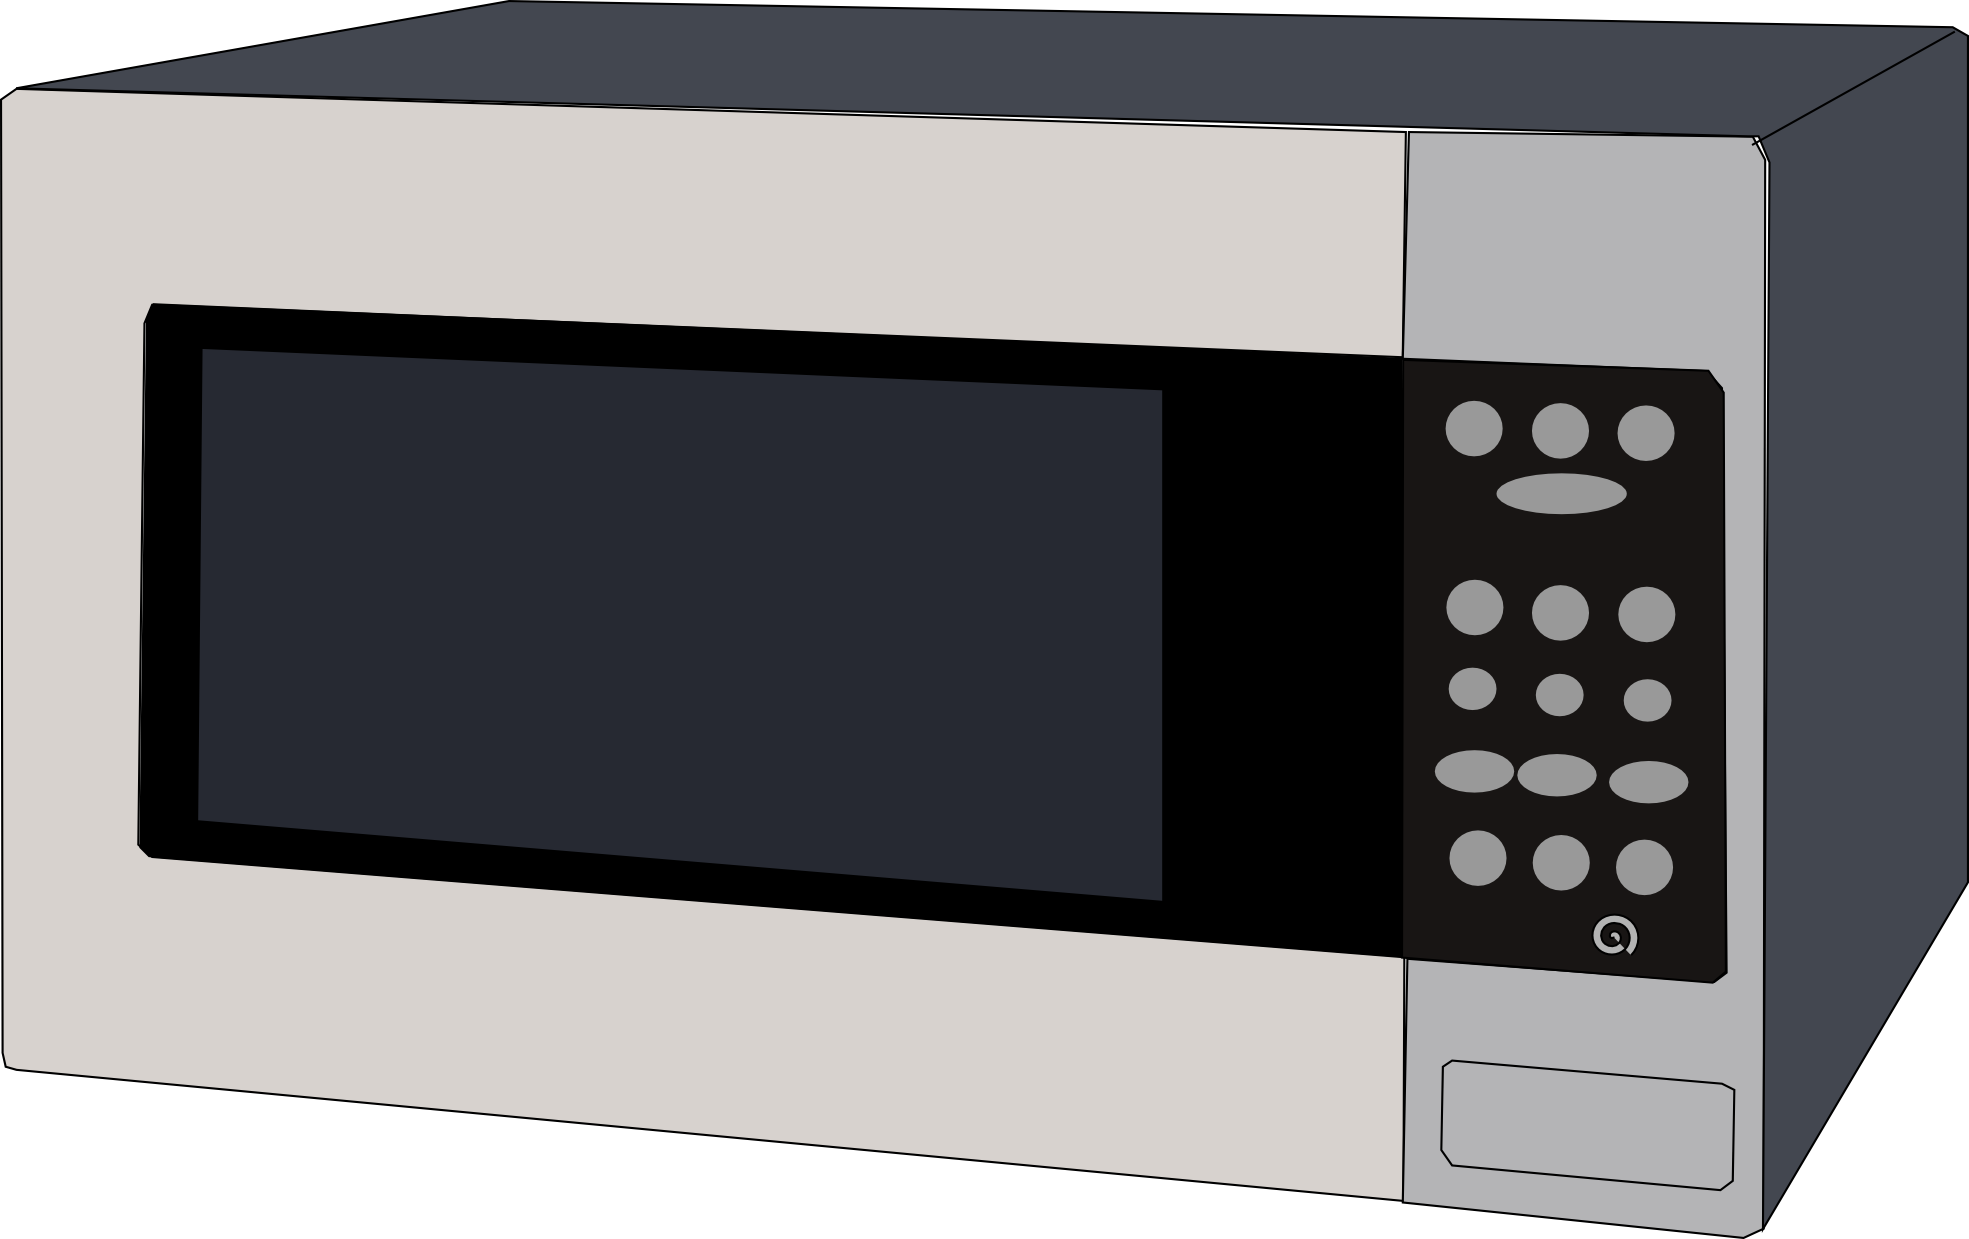 jpg transparent Microwave clipart messy. Panda free images microwaveclipart